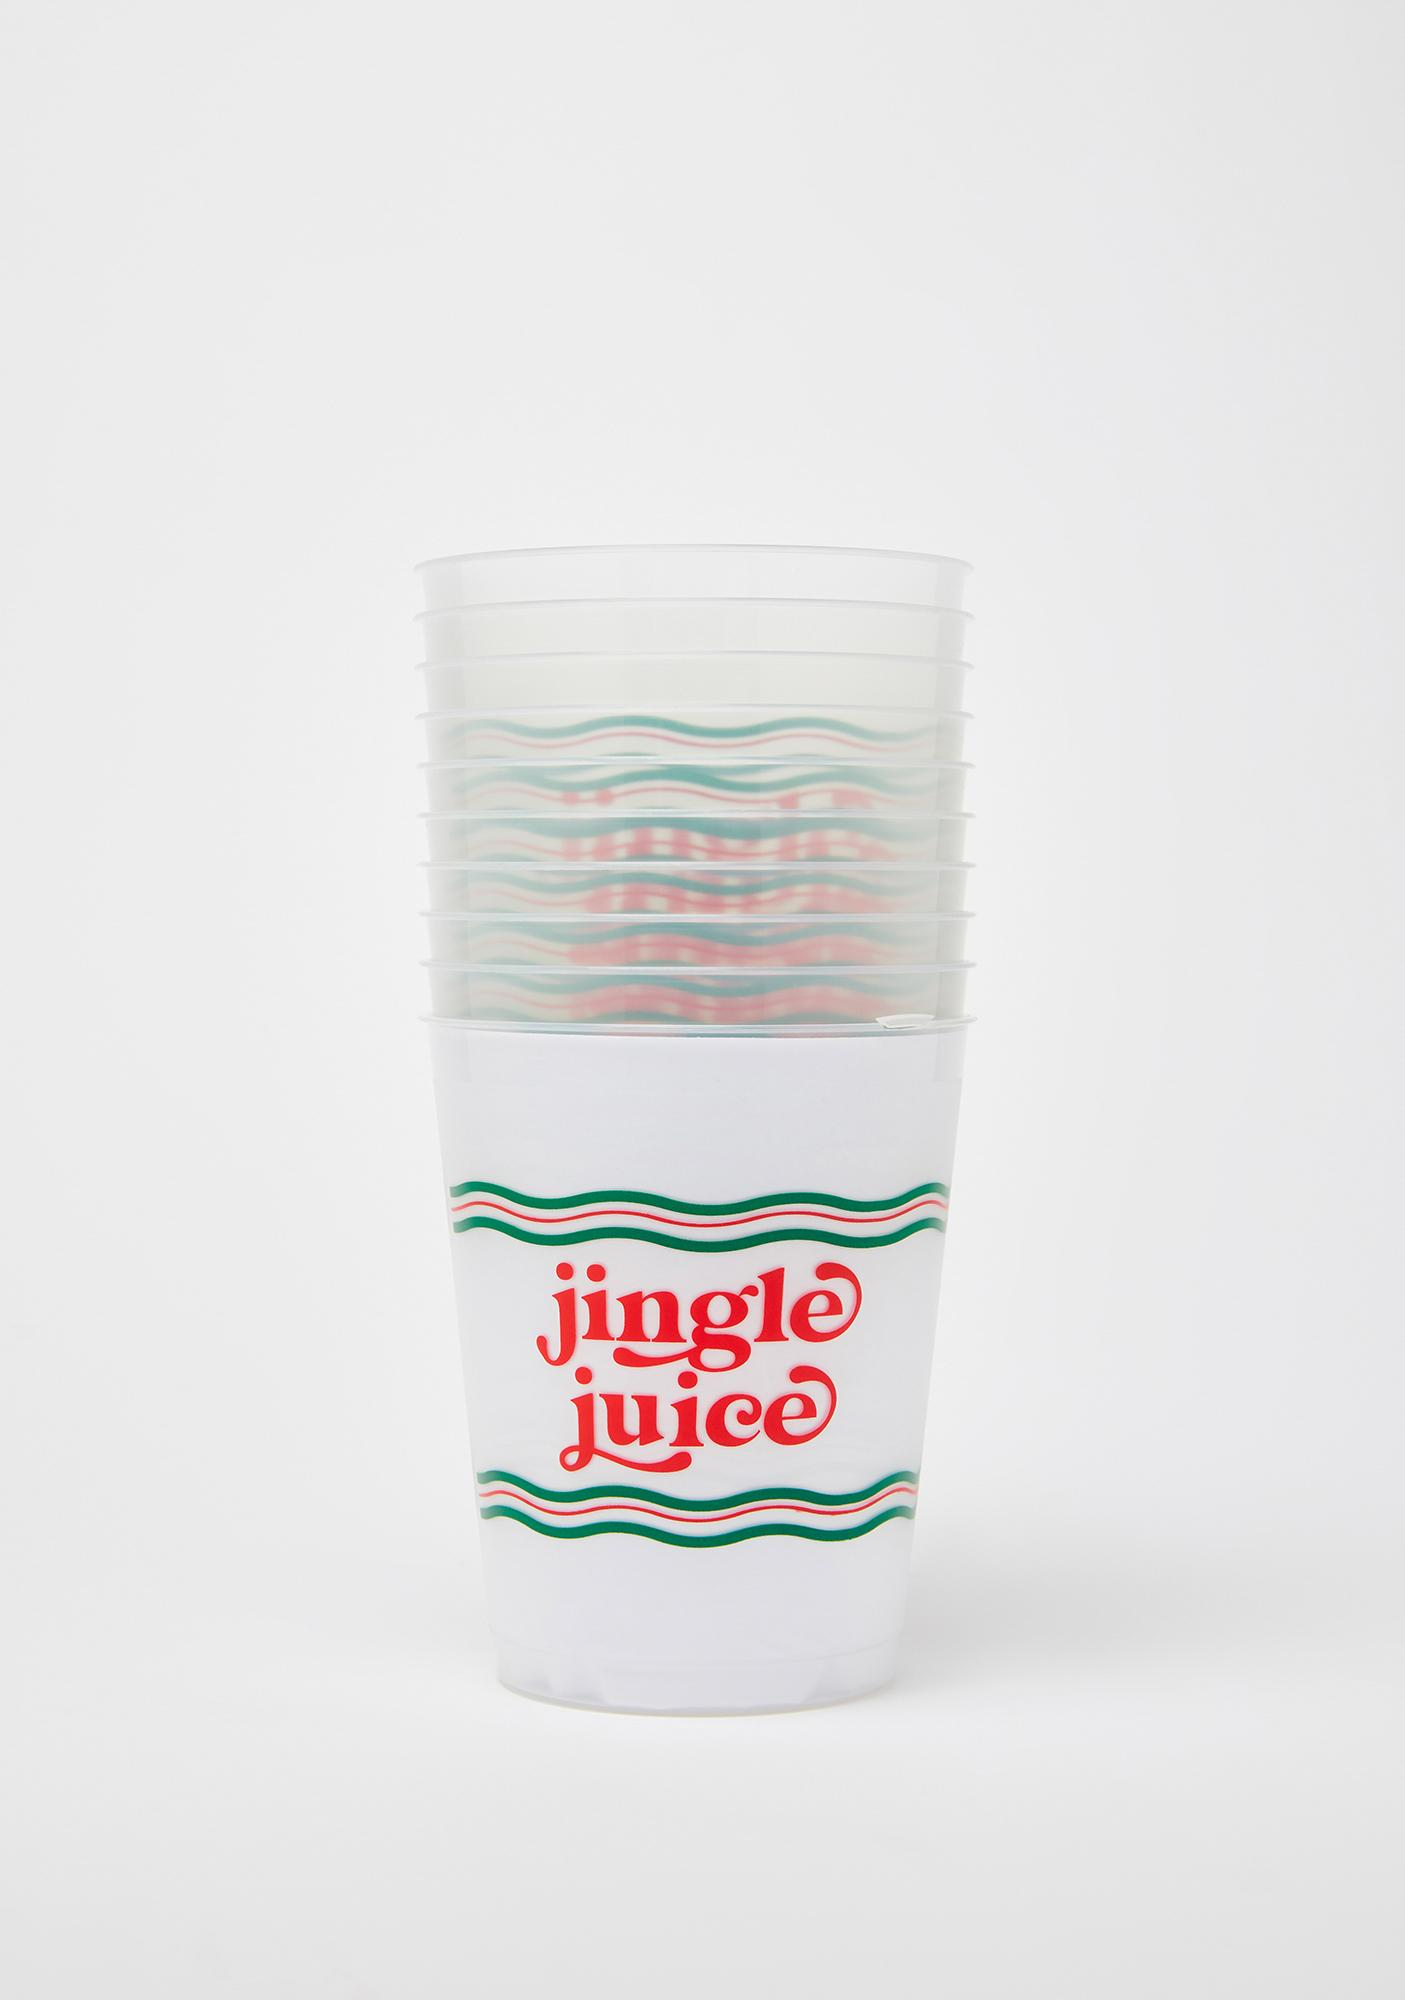 Packed Party Jingle Juice Cupstack